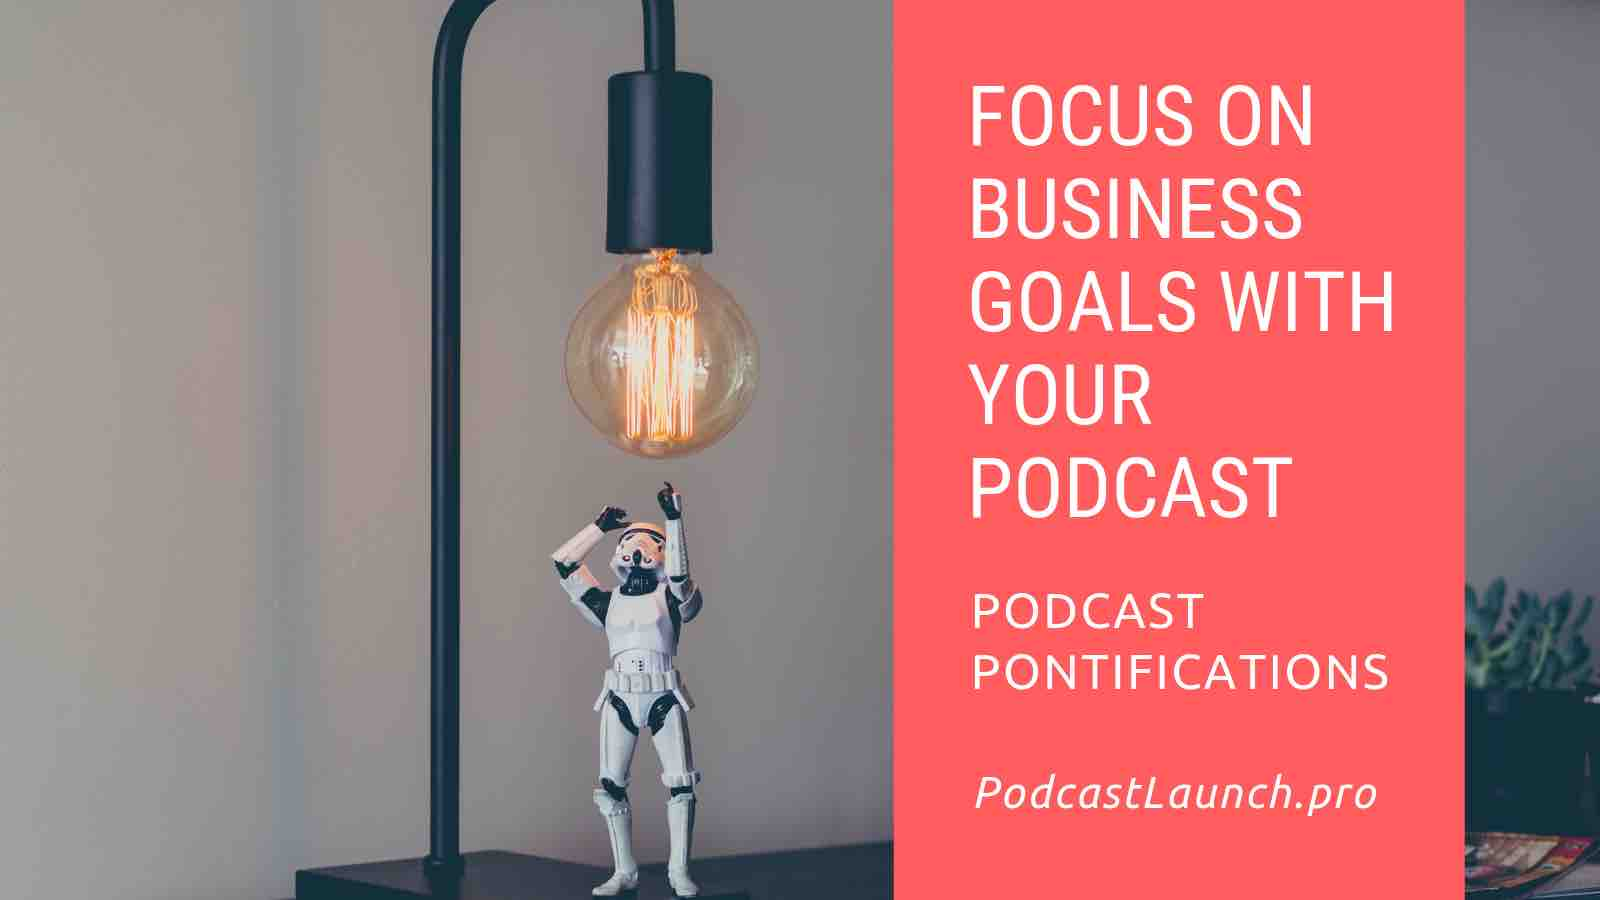 Focus On Business Goals With Your Podcast